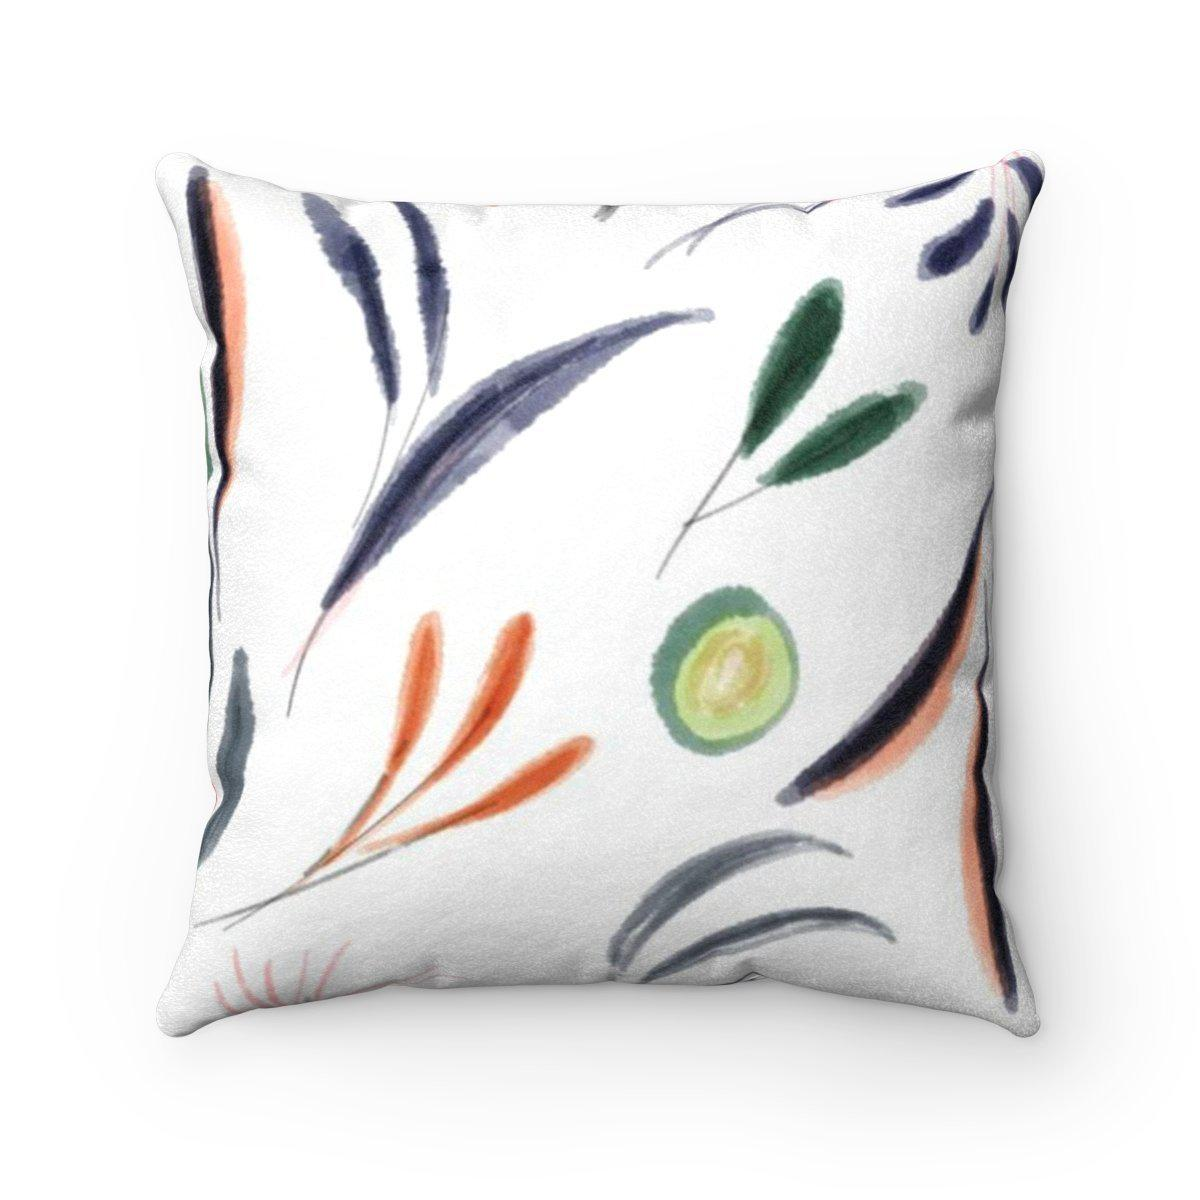 Floral microfiber 2 in 1 decorative pillow w/insert-Home Decor - Decorative Accents - Pillows & Throws - Decorative Pillows-Maison d'Elite-Très Elite